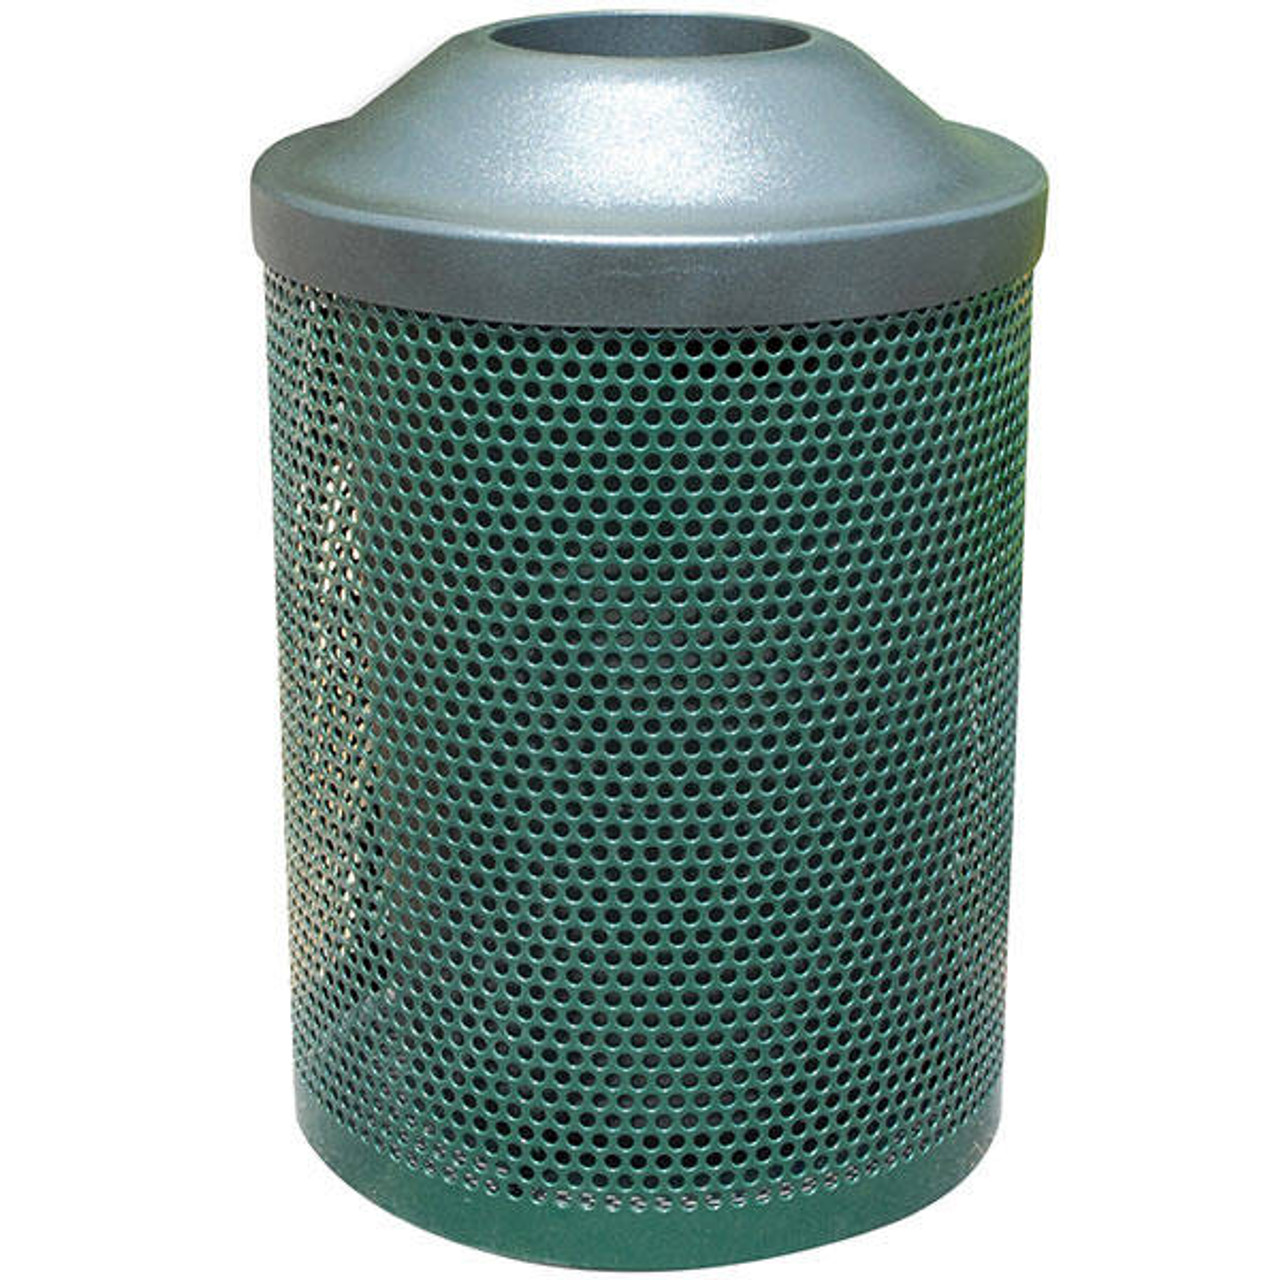 30 Gallon Metal Armor Pitch In Lid Outdoor Waste Container MF3008